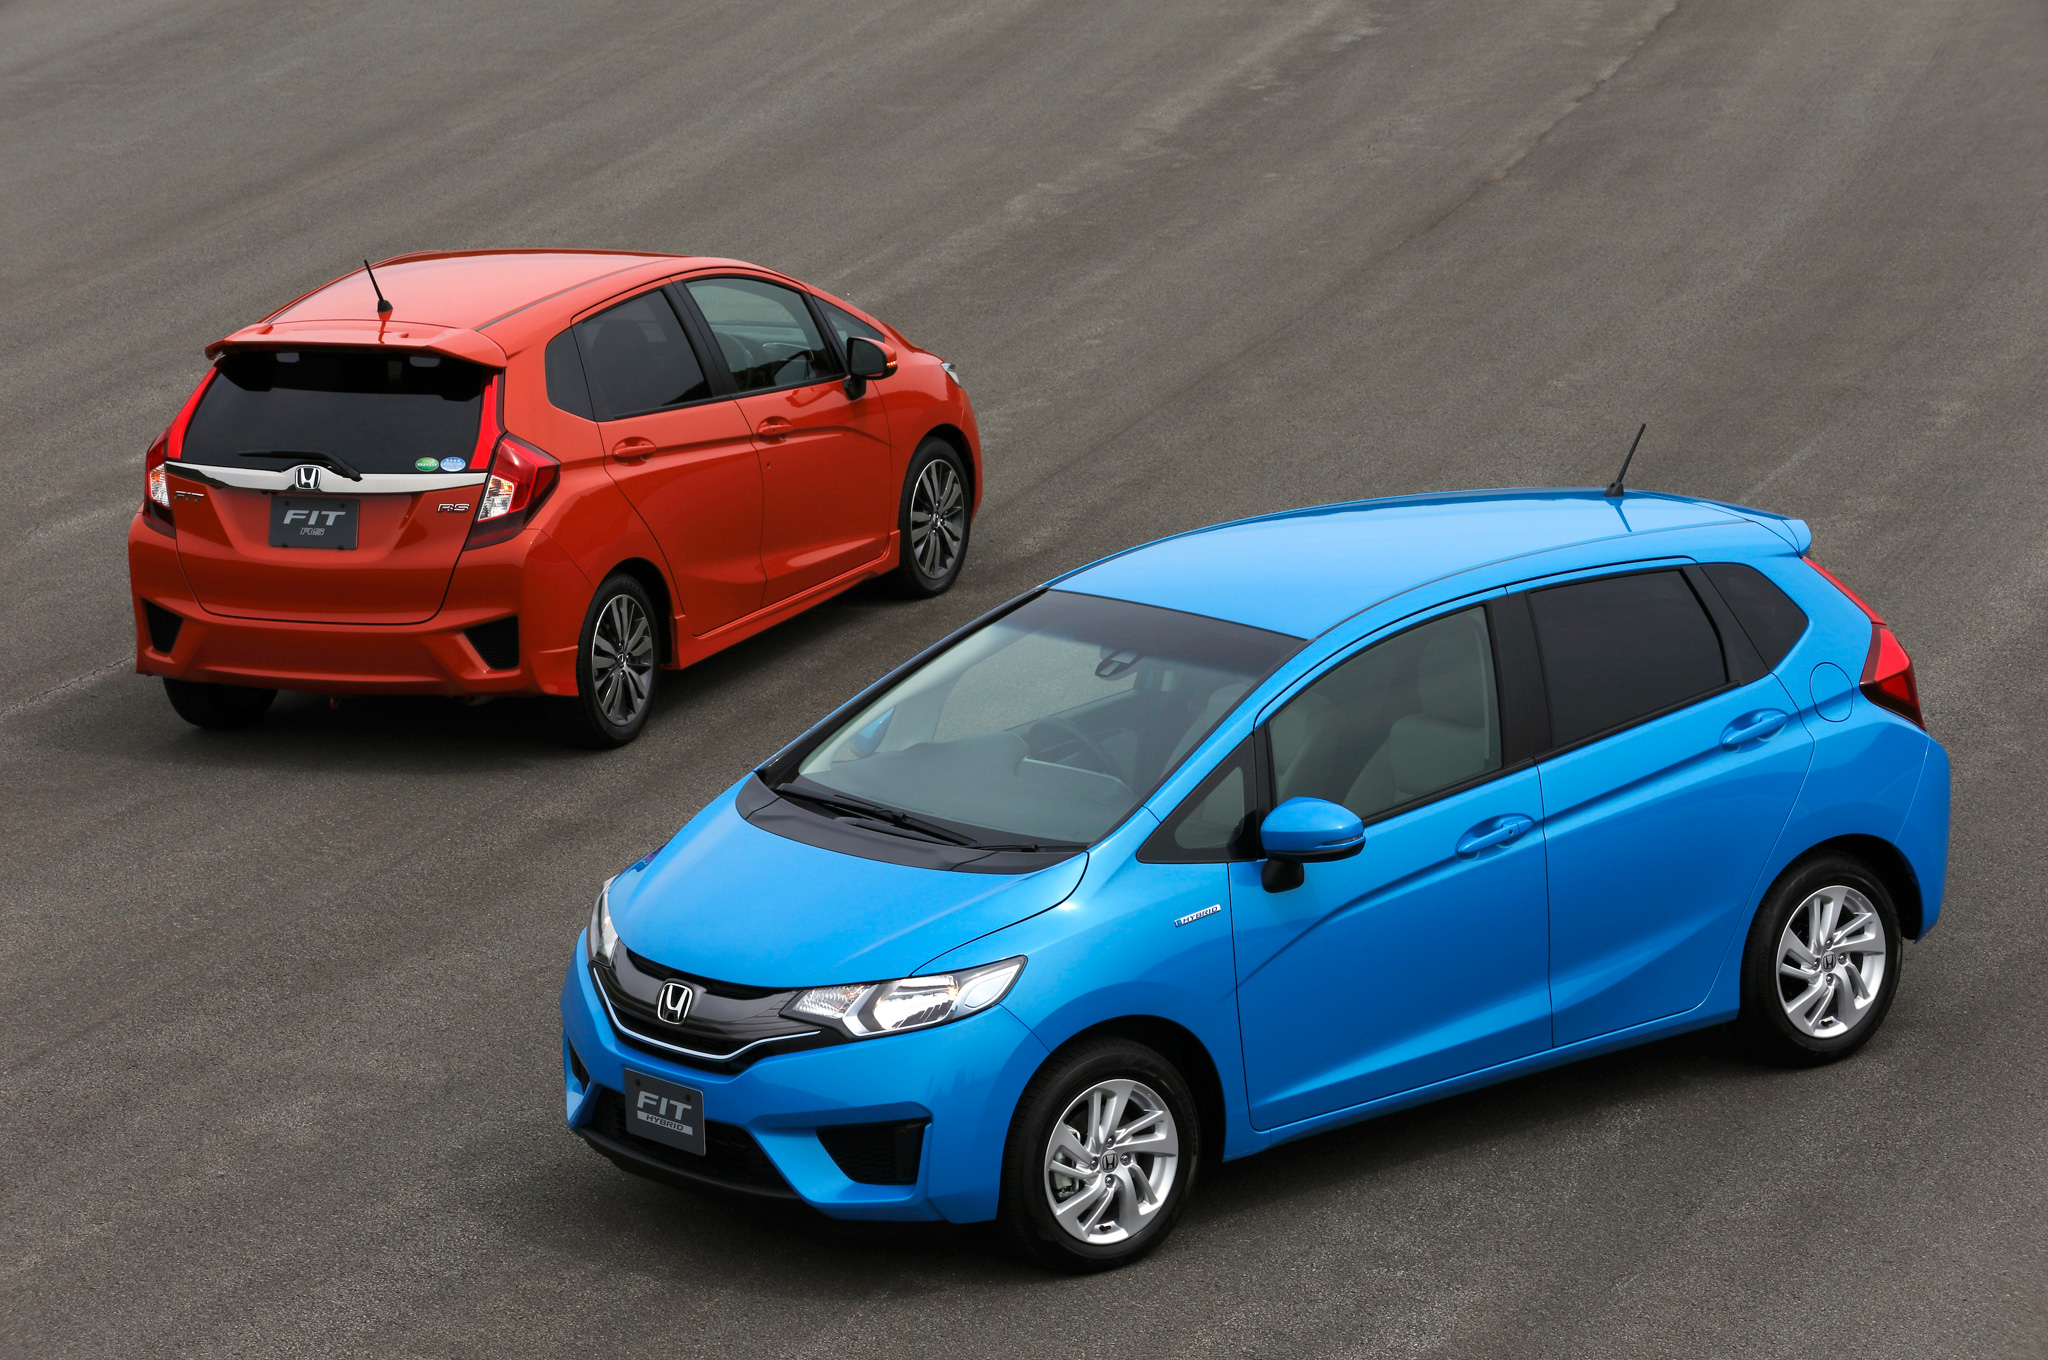 New 2015 Honda Fit Exterior